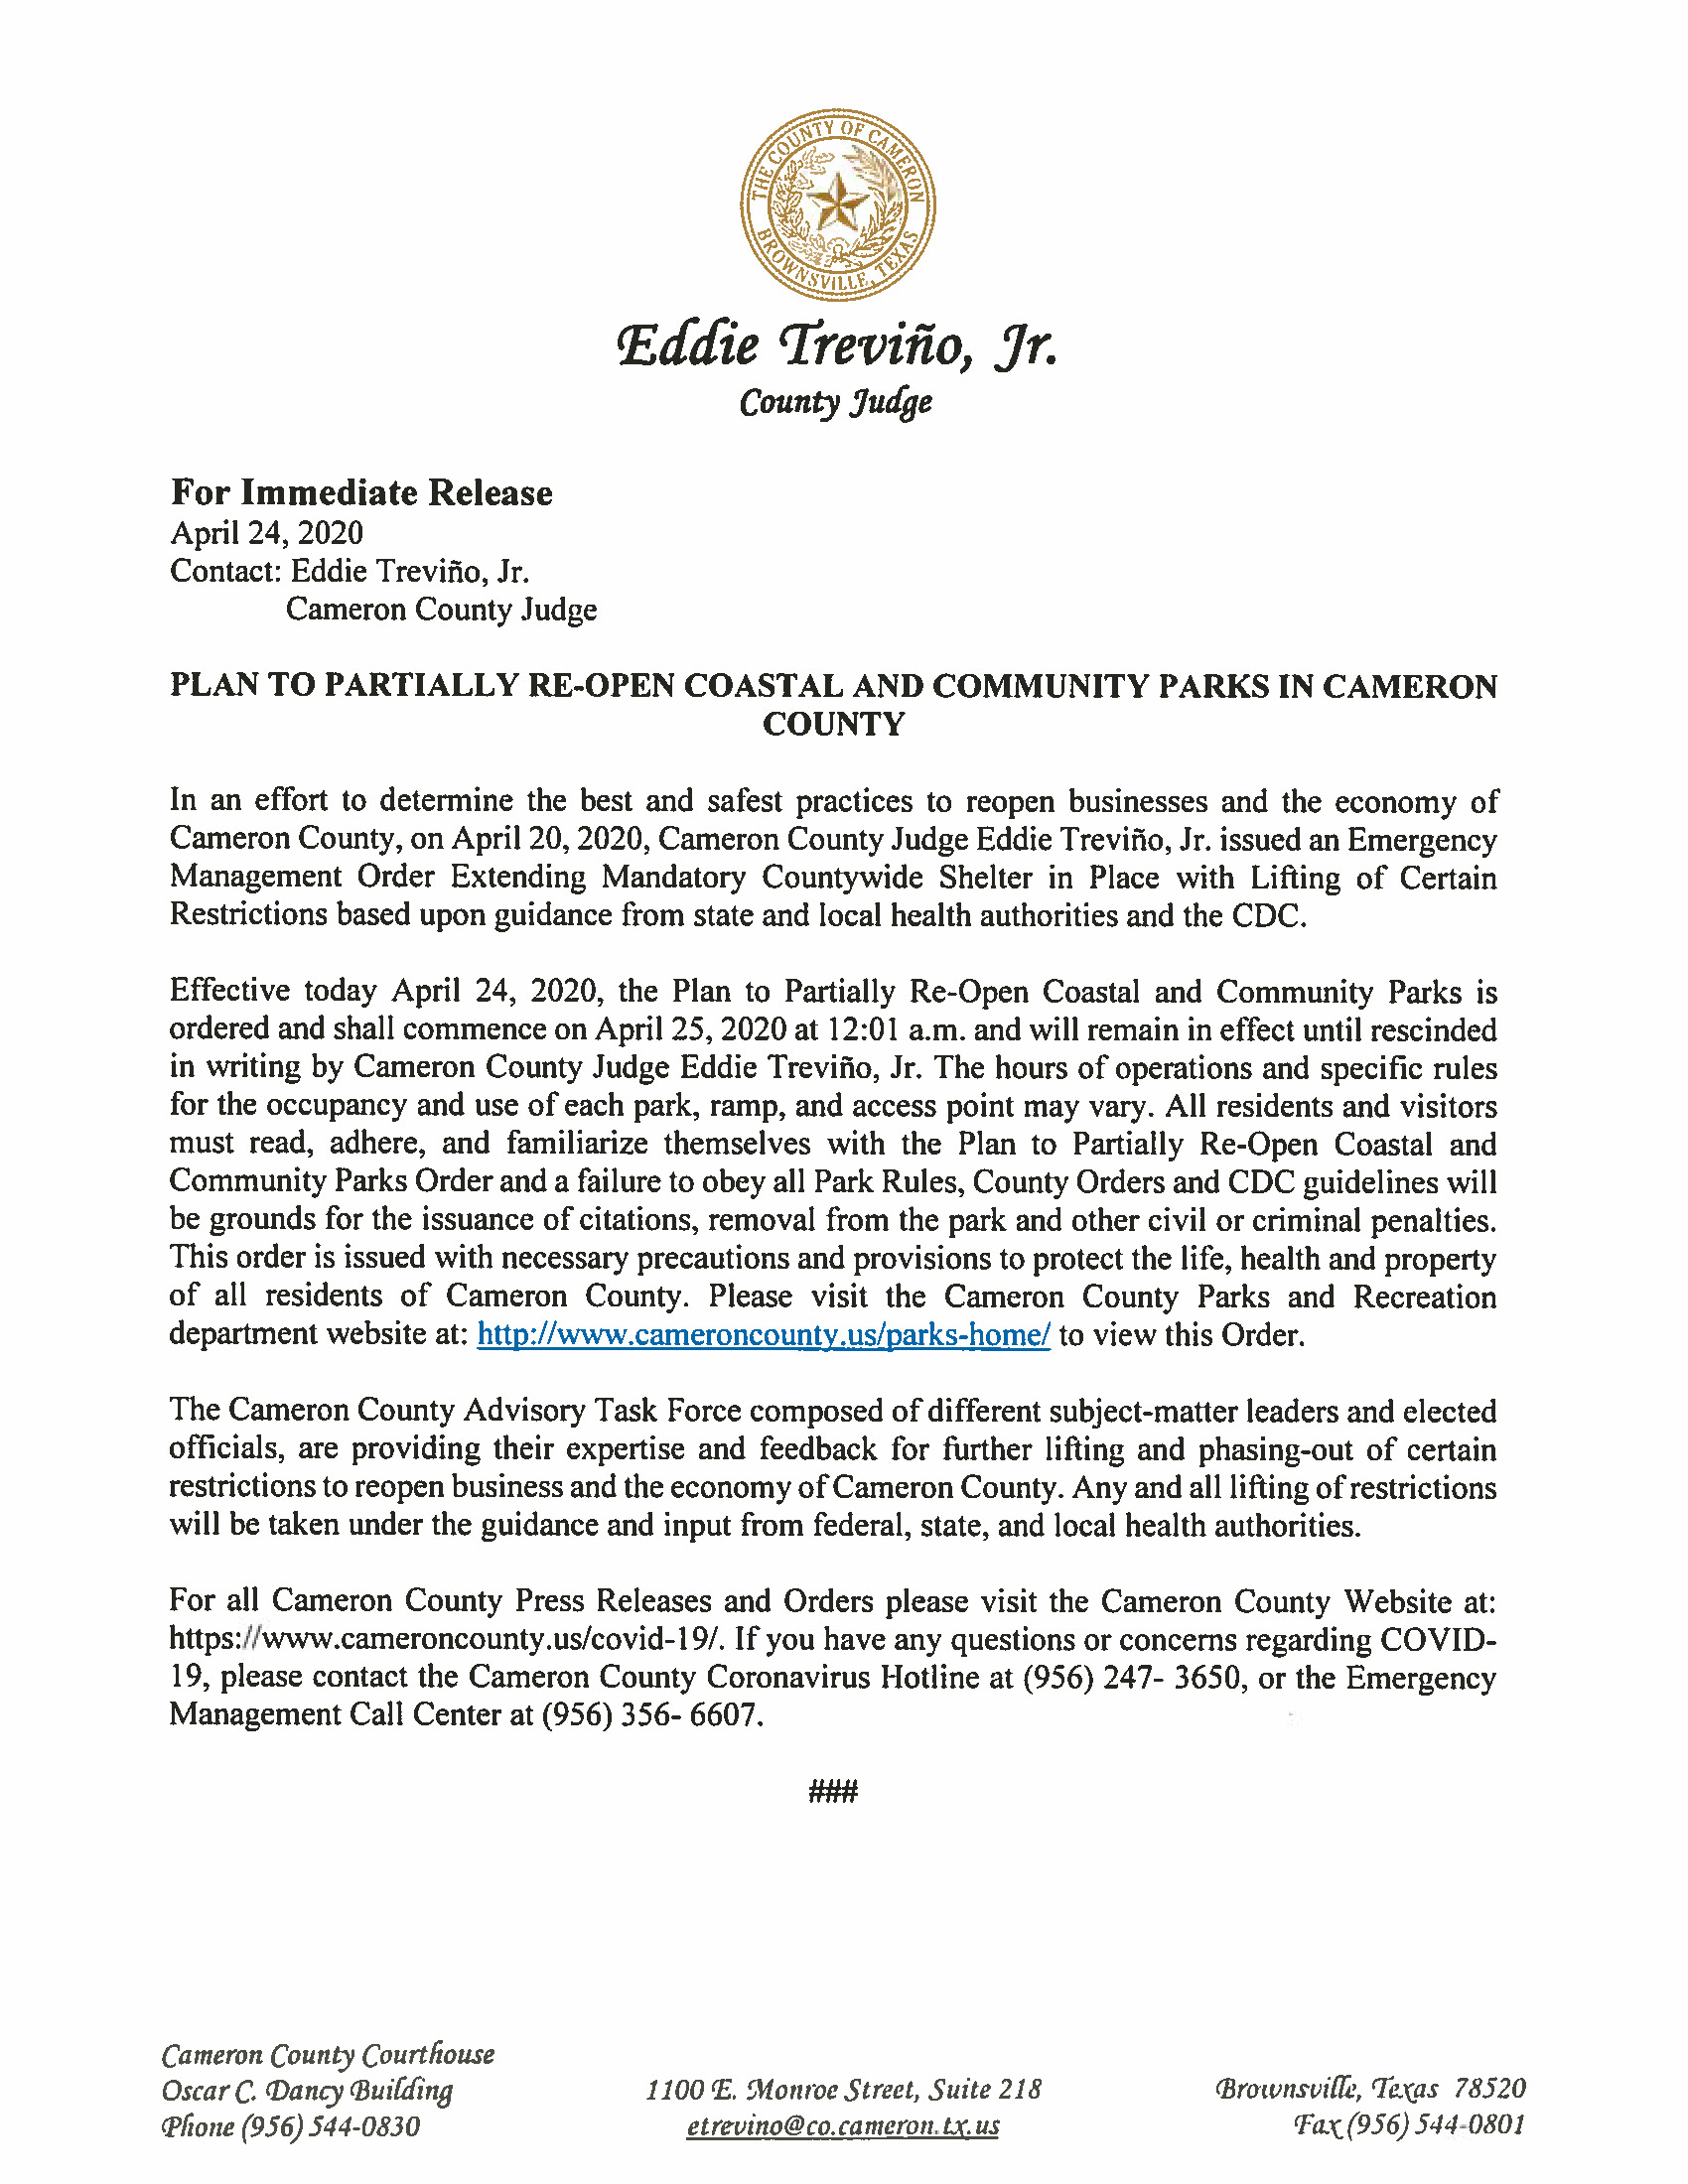 04.24.2020 Press Release Plan To Partially Re Open Coastal And Community Parks In Cameron County